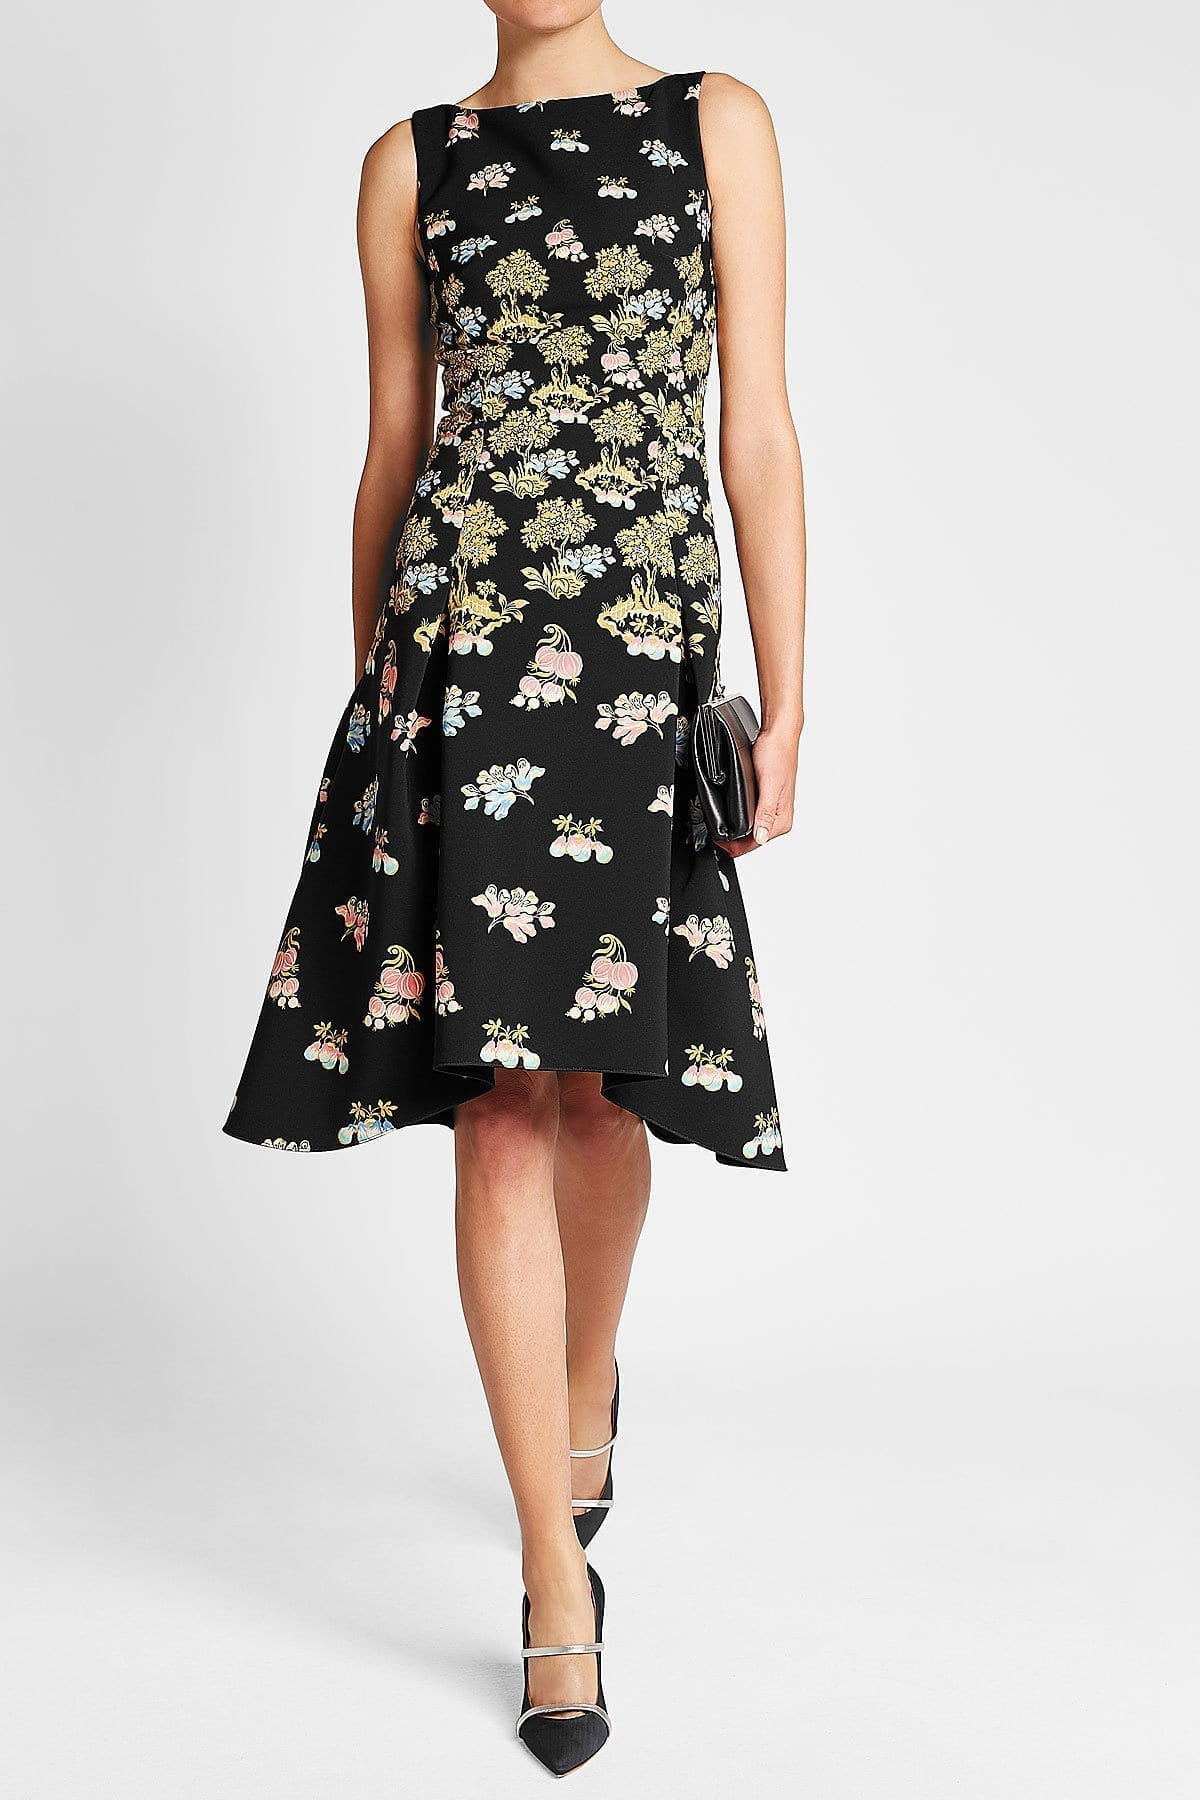 PETER PILOTTO Cady Multicolored / Floral Printed Dress